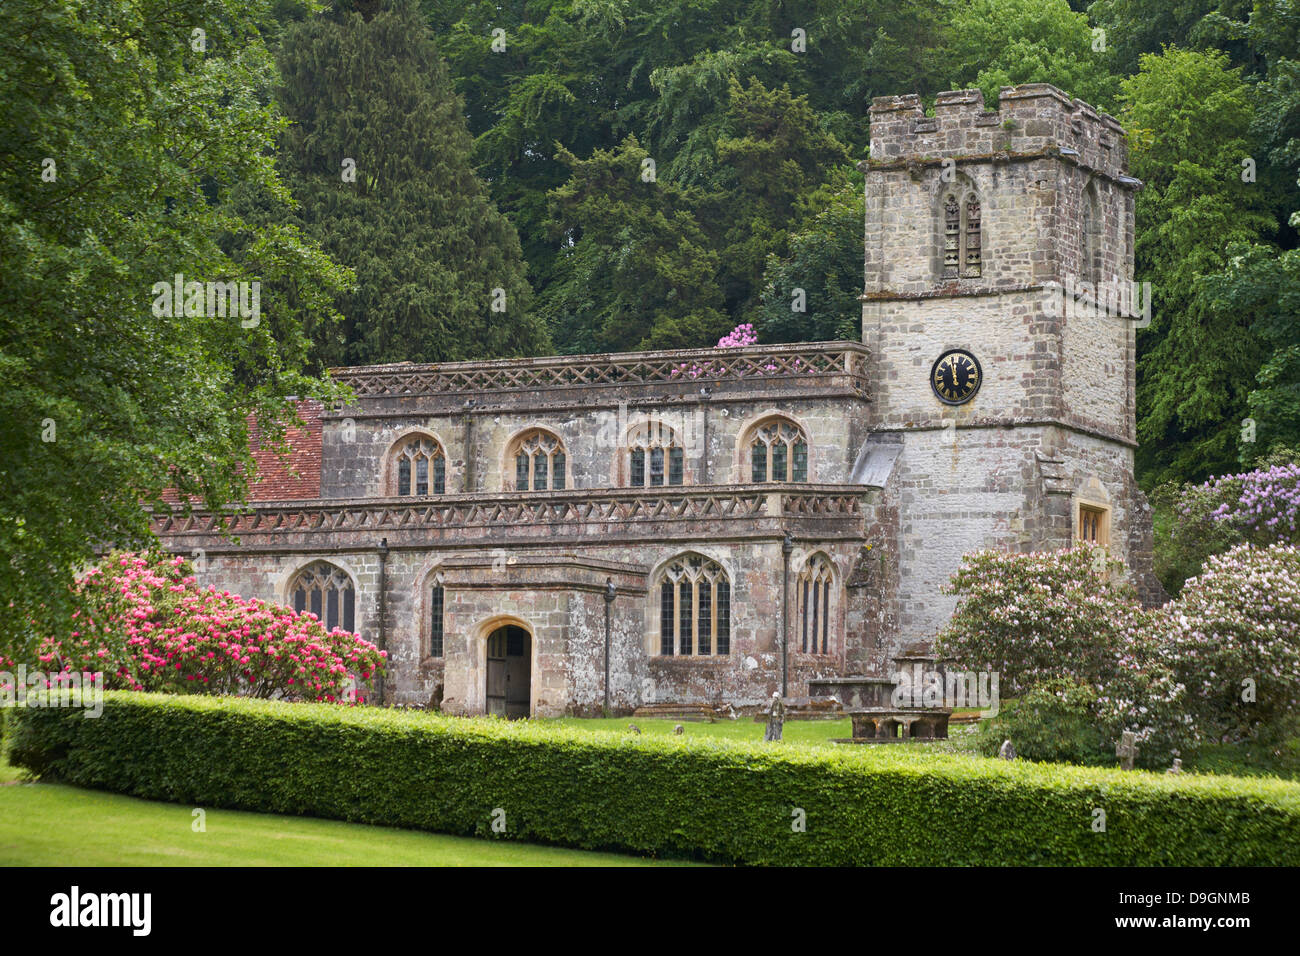 Church Of St Peters At Stourton, Wiltshire In June Stock ...